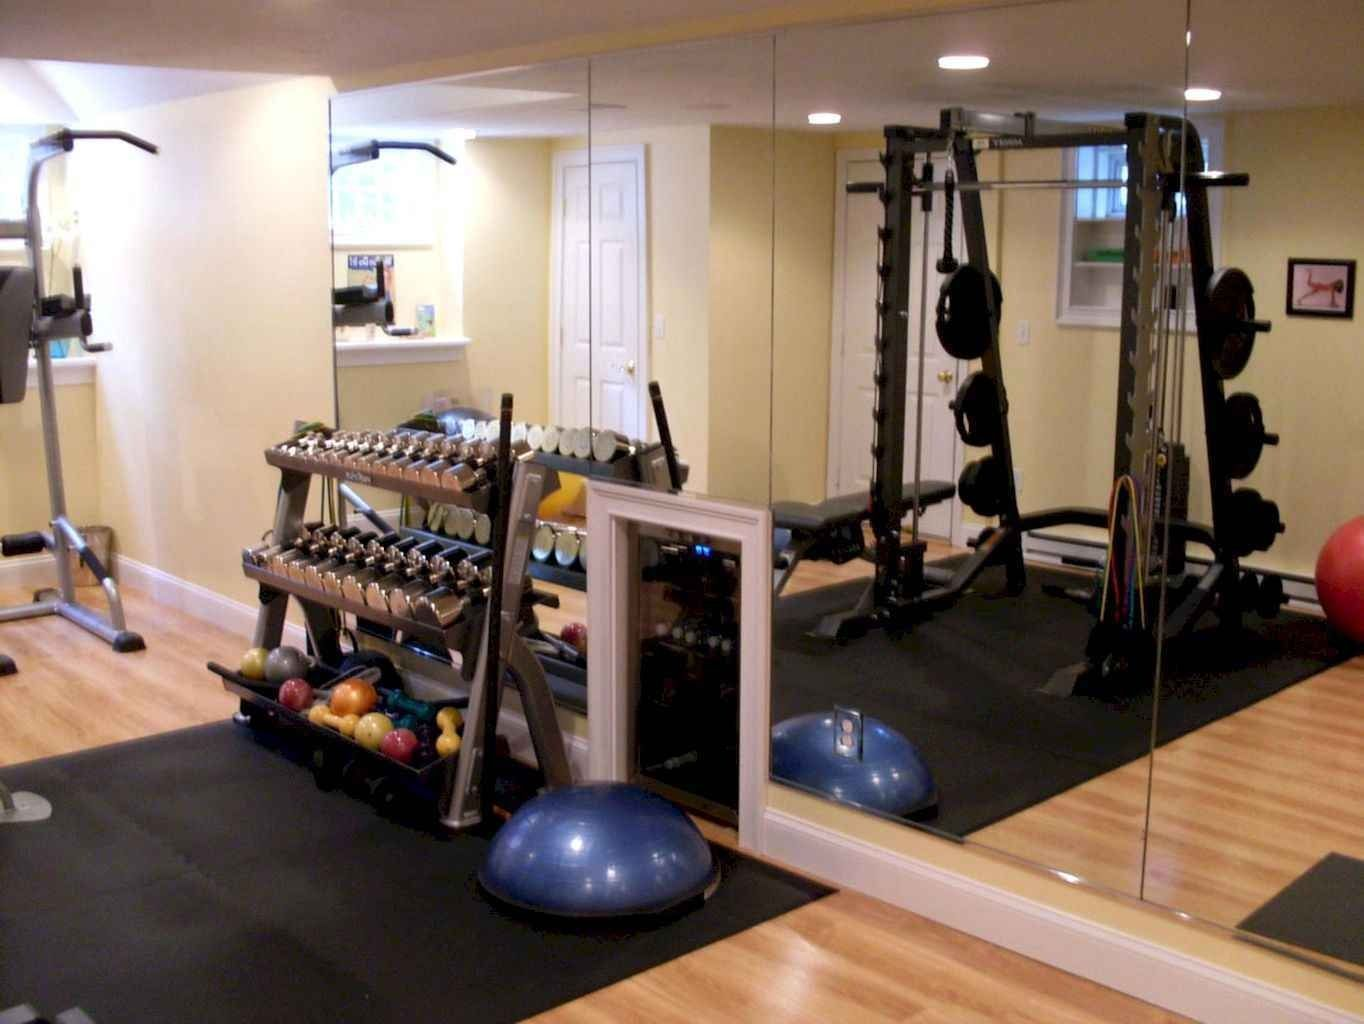 60 Cool Home Gym Ideas Decoration On A Budget For Small Room Gym Room At Home Home Gym Decor Gym Decor